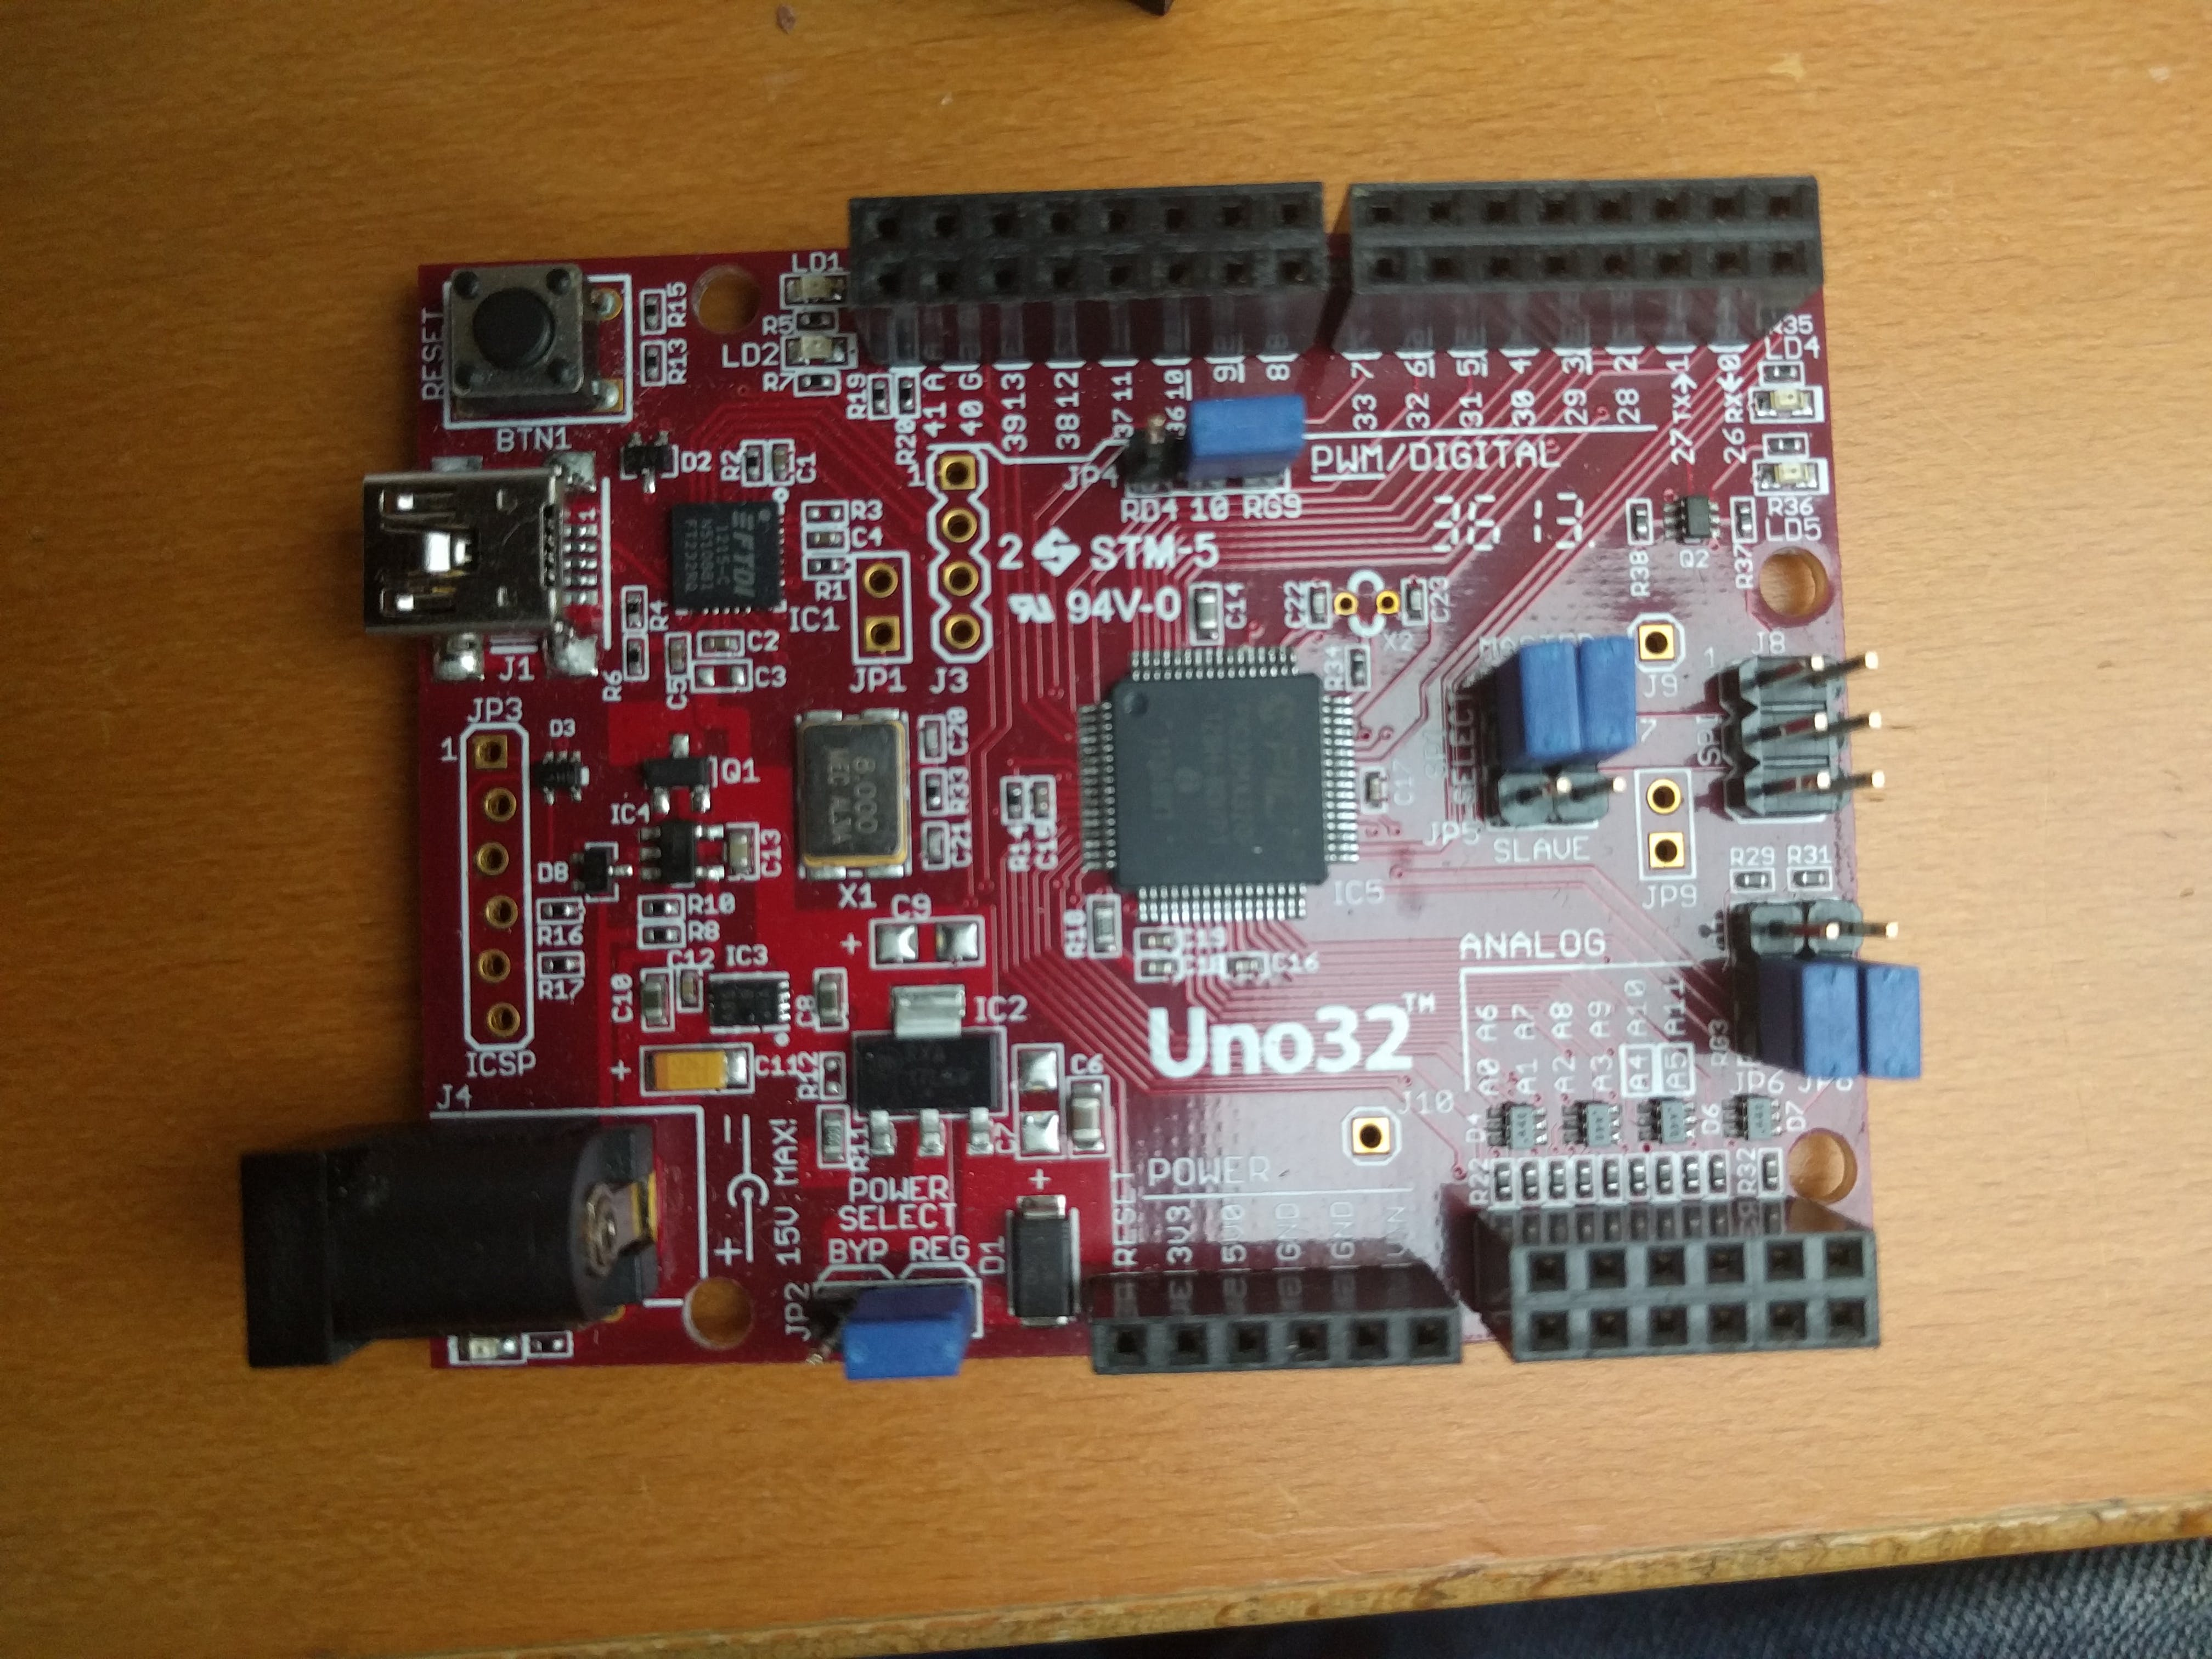 This is the Uno32, but UC32 is also supported(IDK about others)